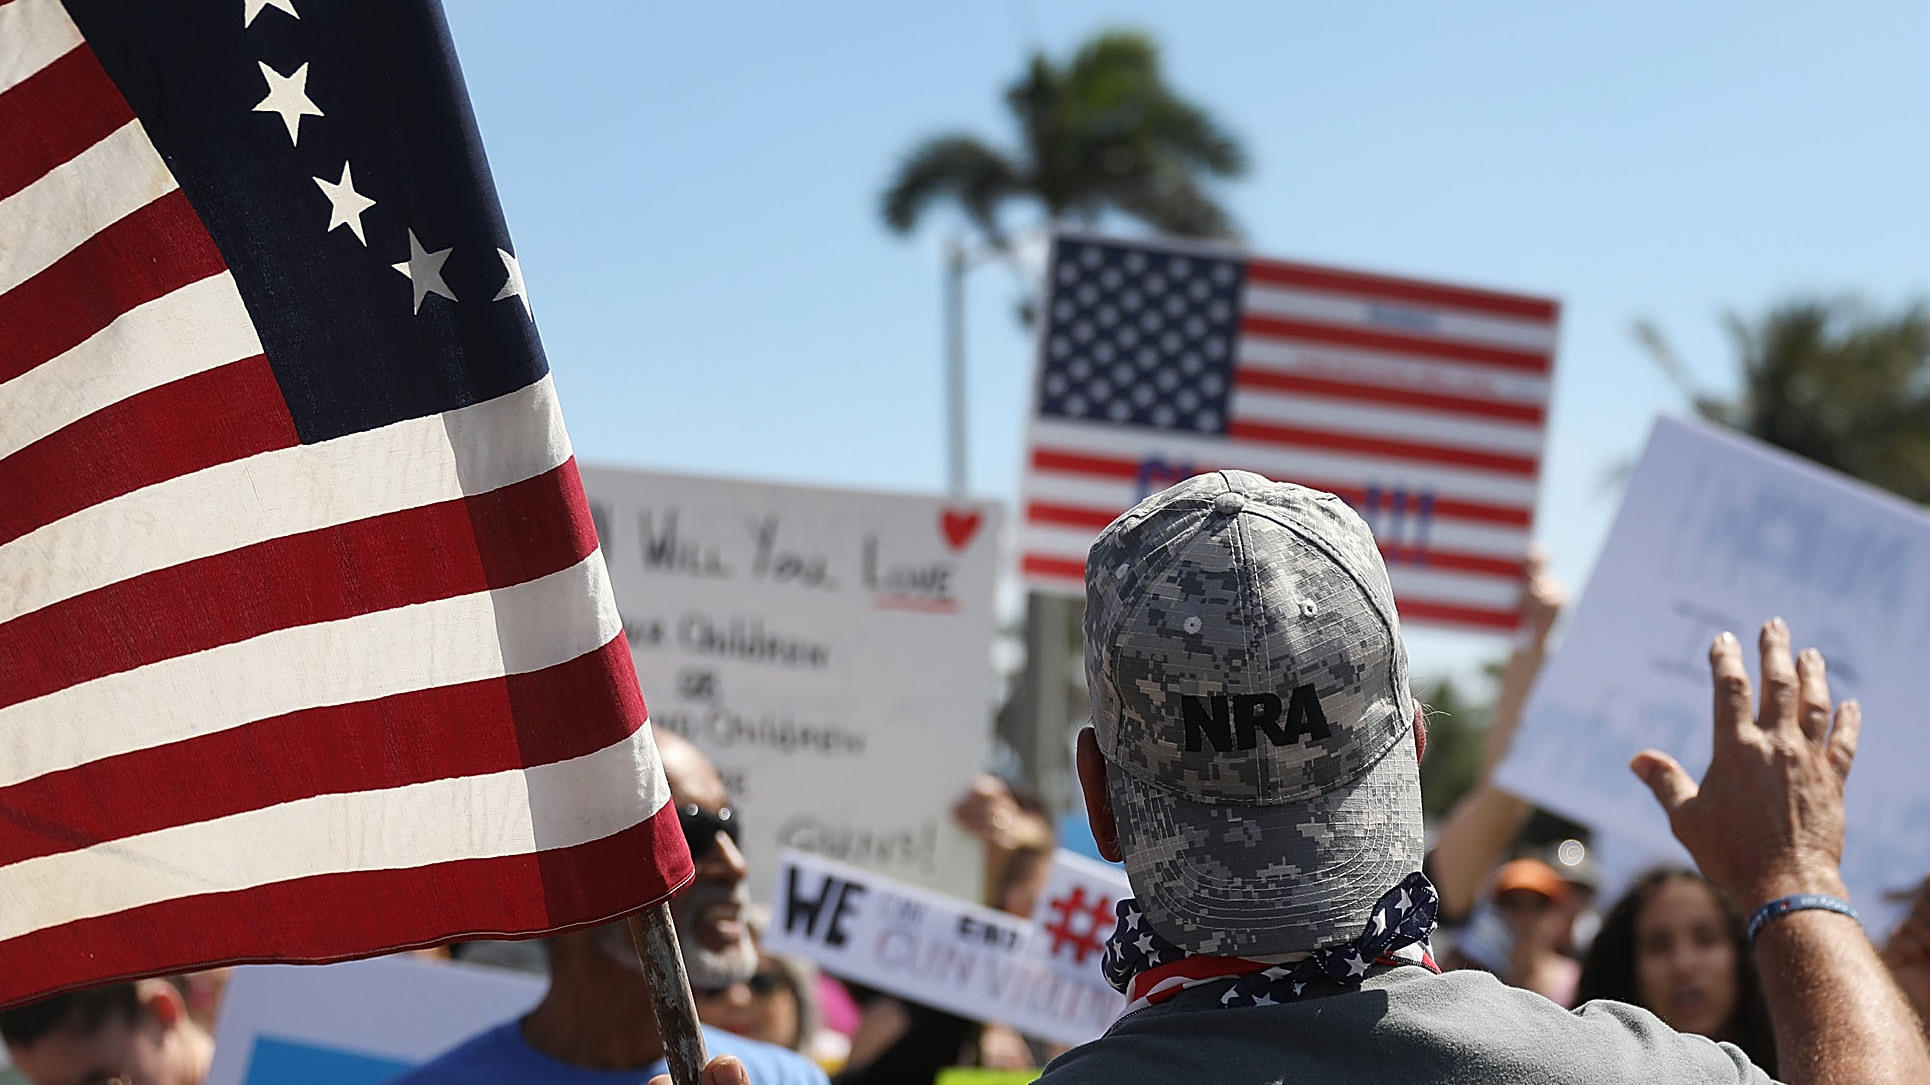 NRA Teens Can't Anonymously Challenge Florida Gun Laws, Judge Says